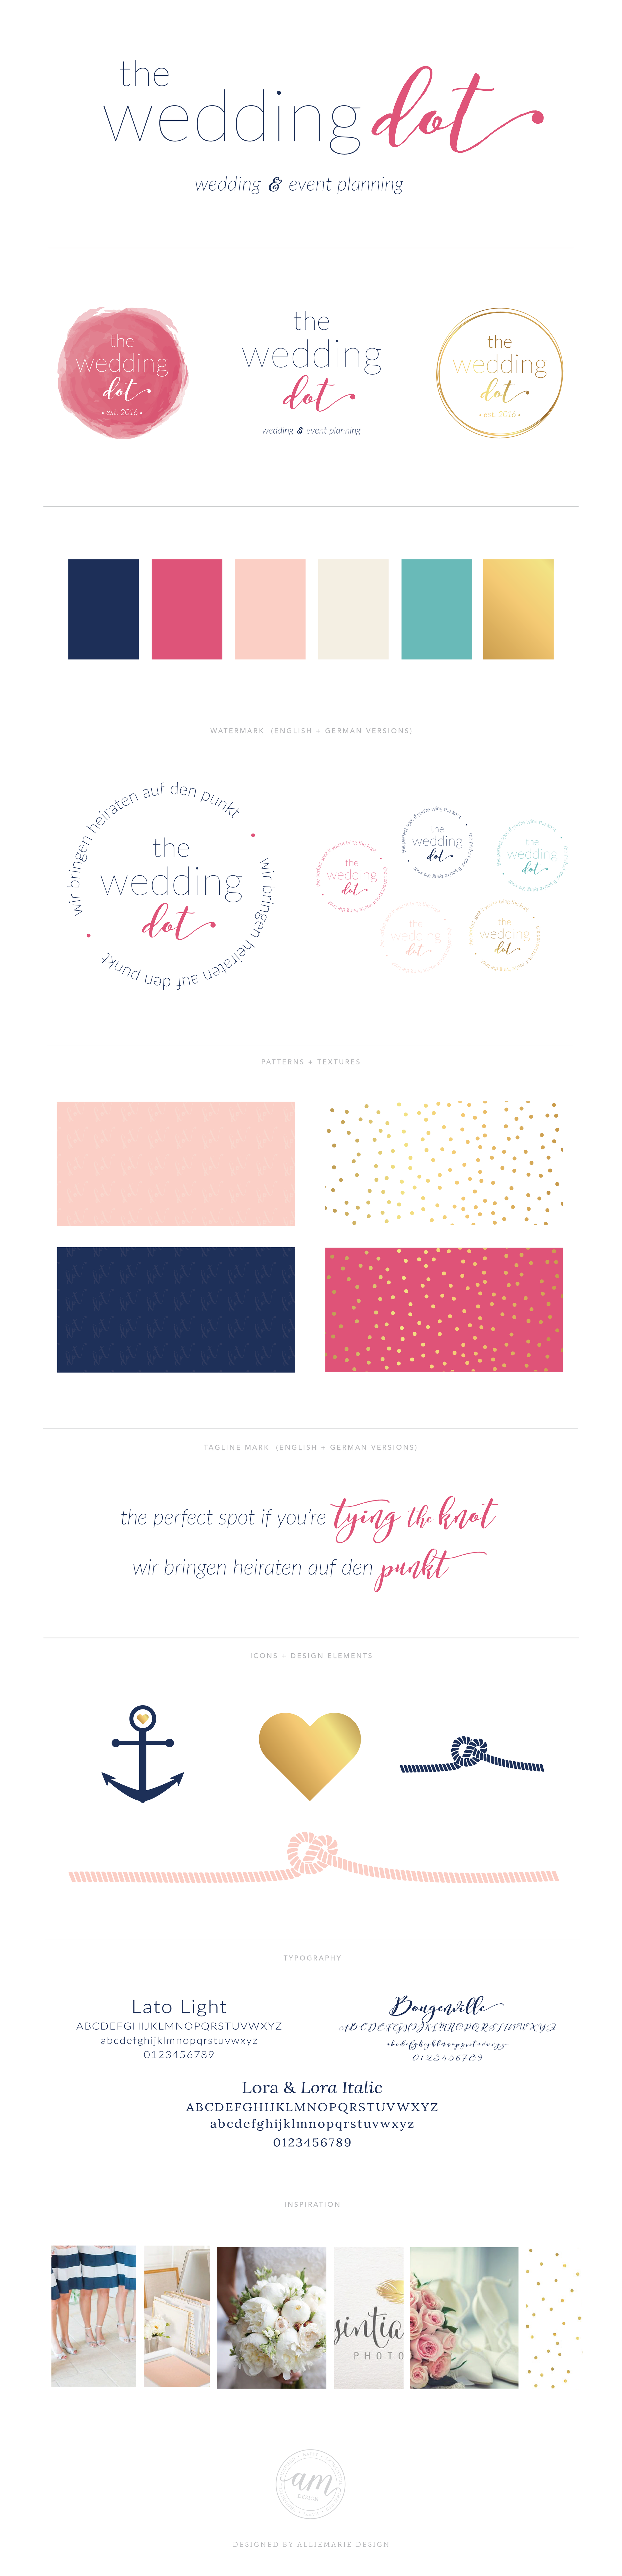 The Wedding Dot Logo Design and Visual Brand Styling, Designed by AllieMarie Design